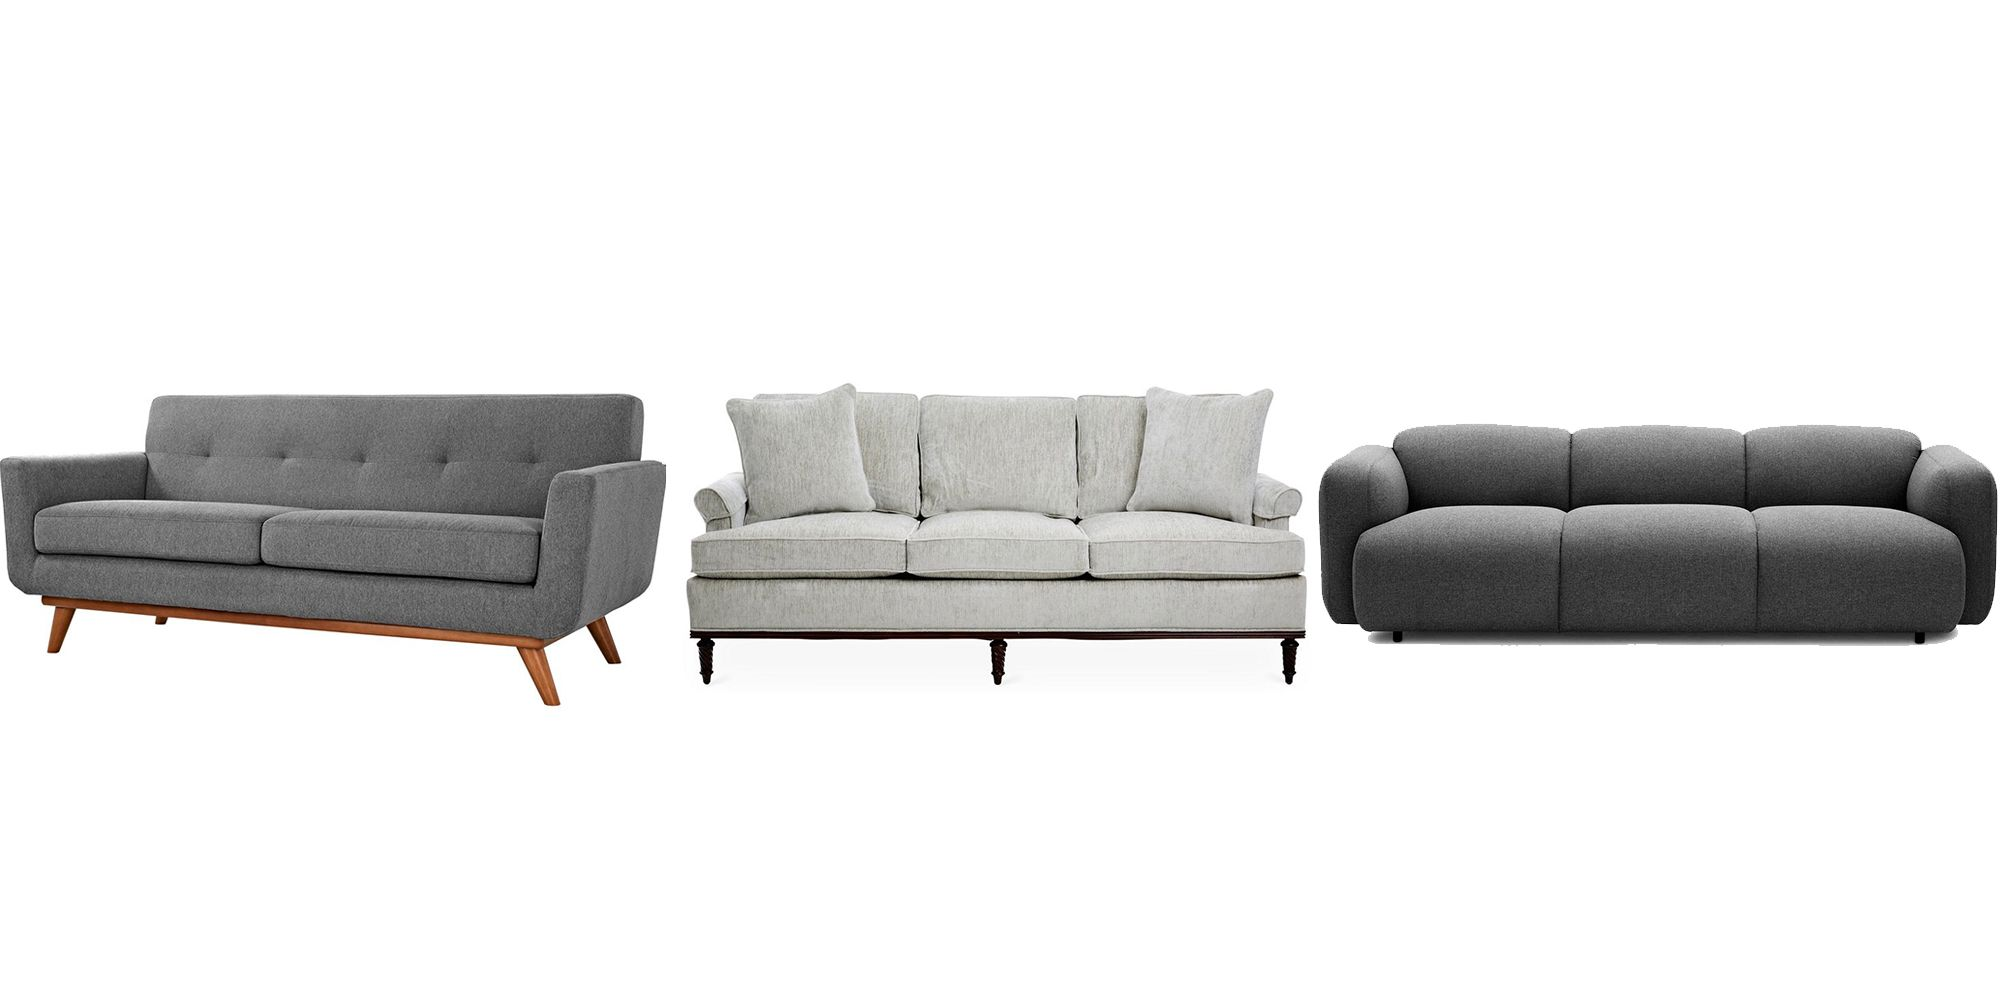 Merveilleux 25 Grey Sofa Ideas That Are Anything But Boring